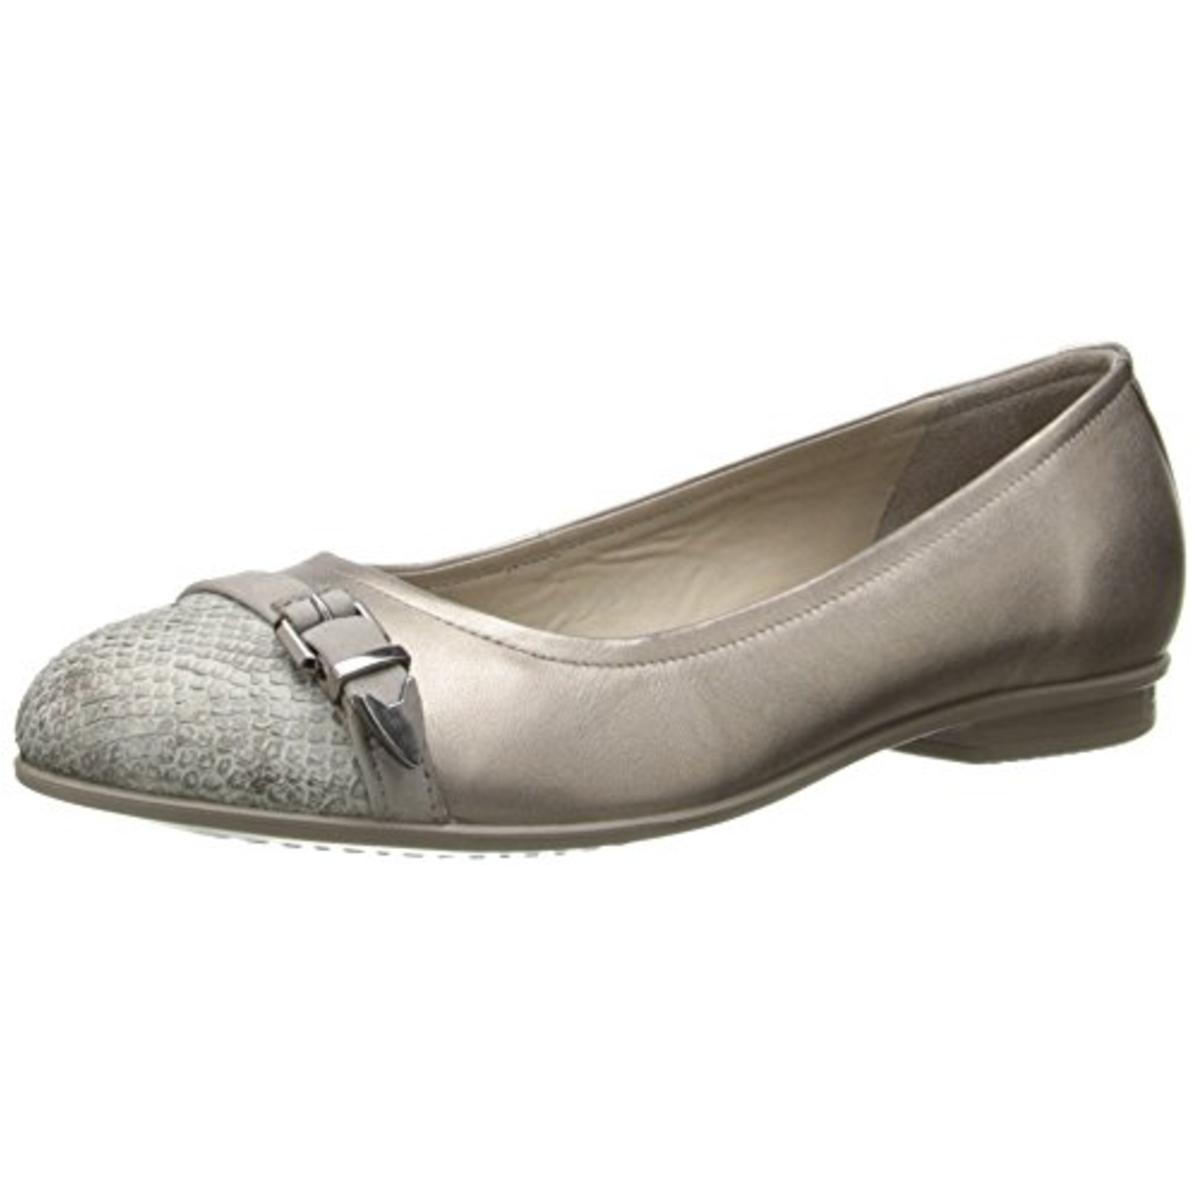 ECCO Womens Leather Slip On Flats by Ecco